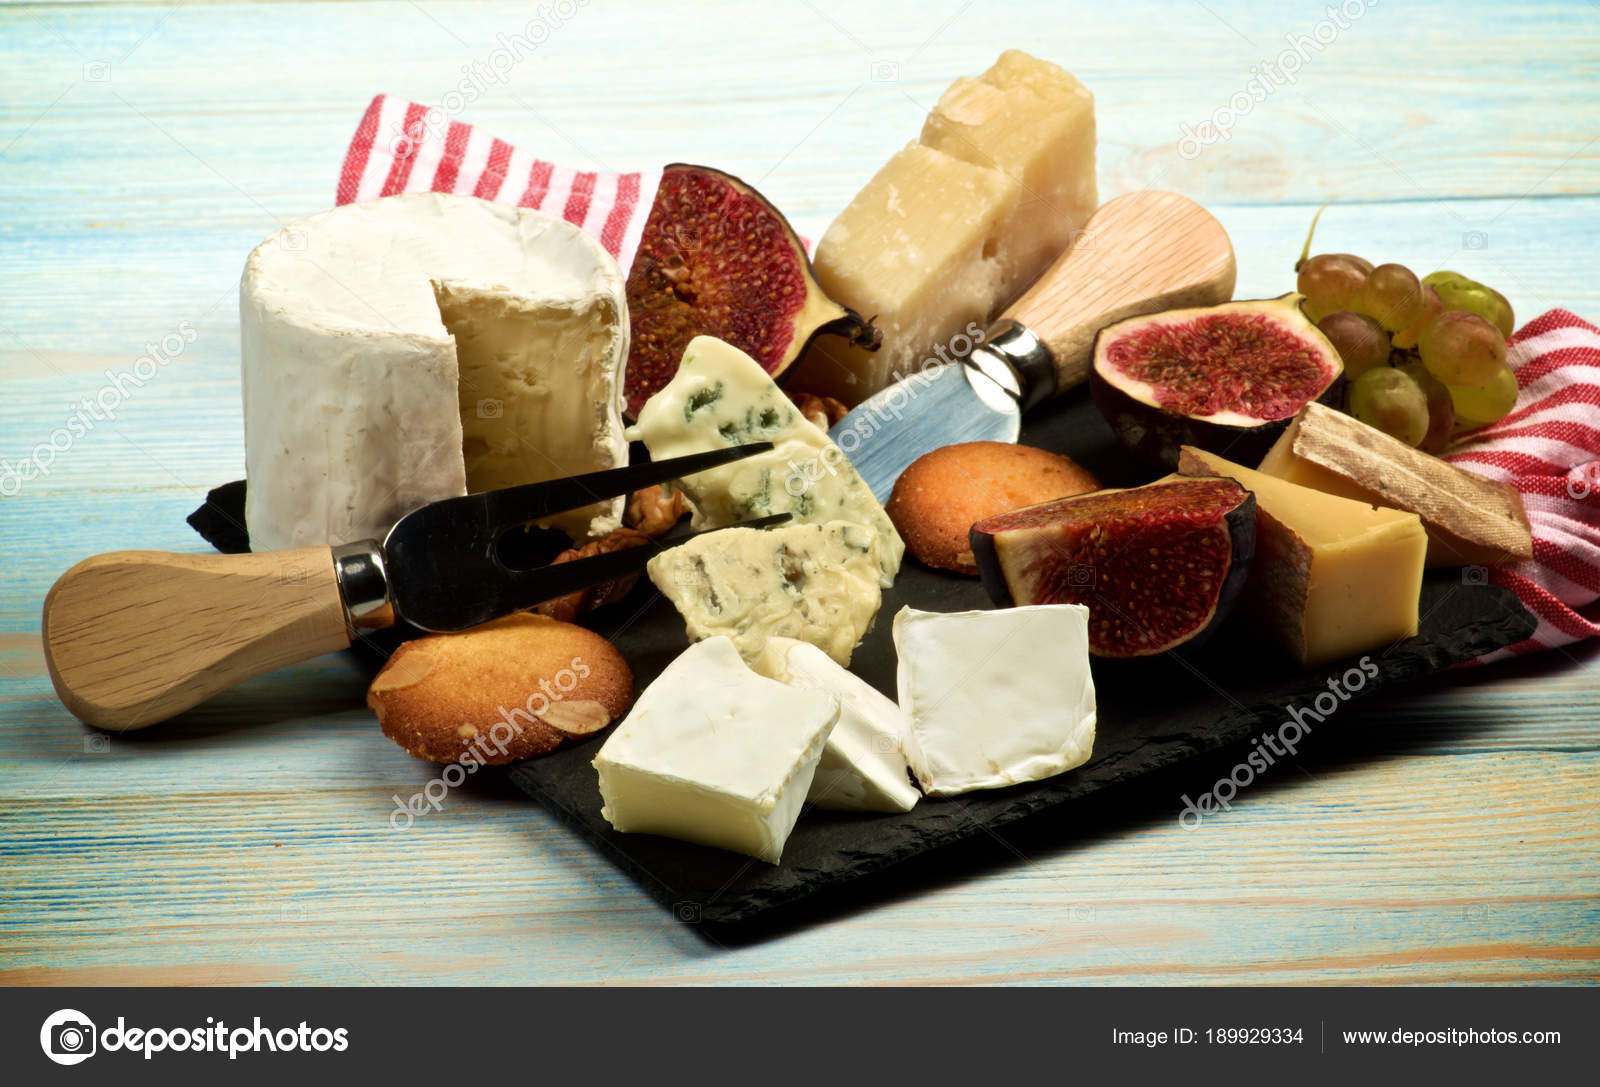 Gourmet Cheese Plate u2014 Stock Photo : gourmet cheese plate - pezcame.com